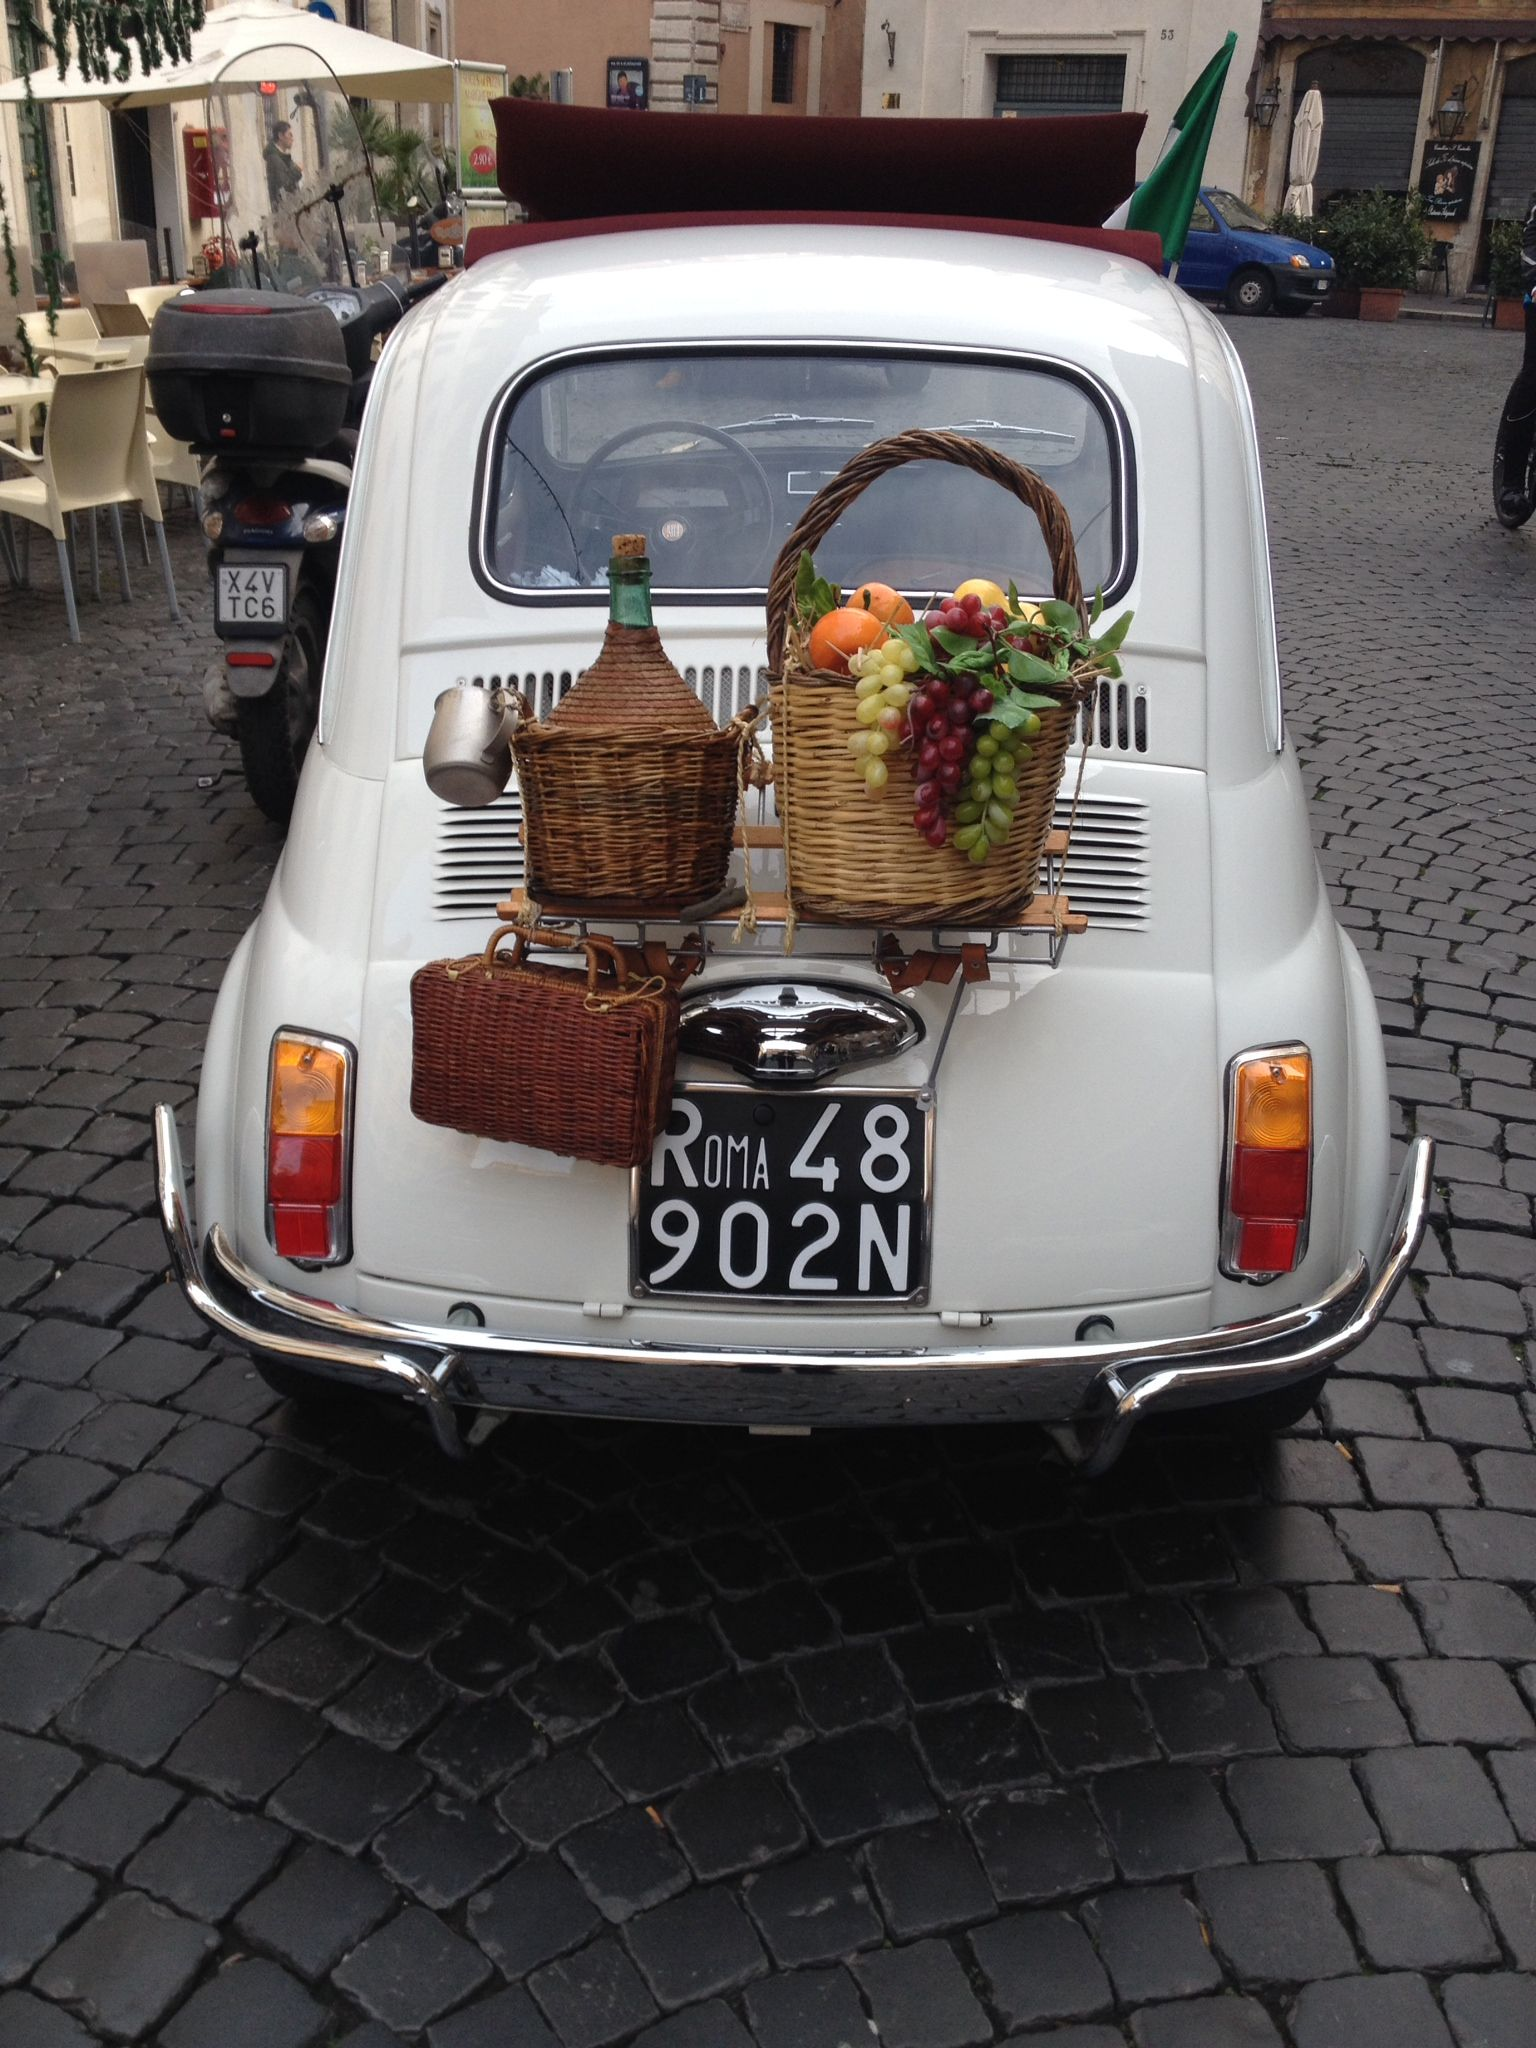 Perfect sighting of an old Fiat 500, including wine baskets, for my last day